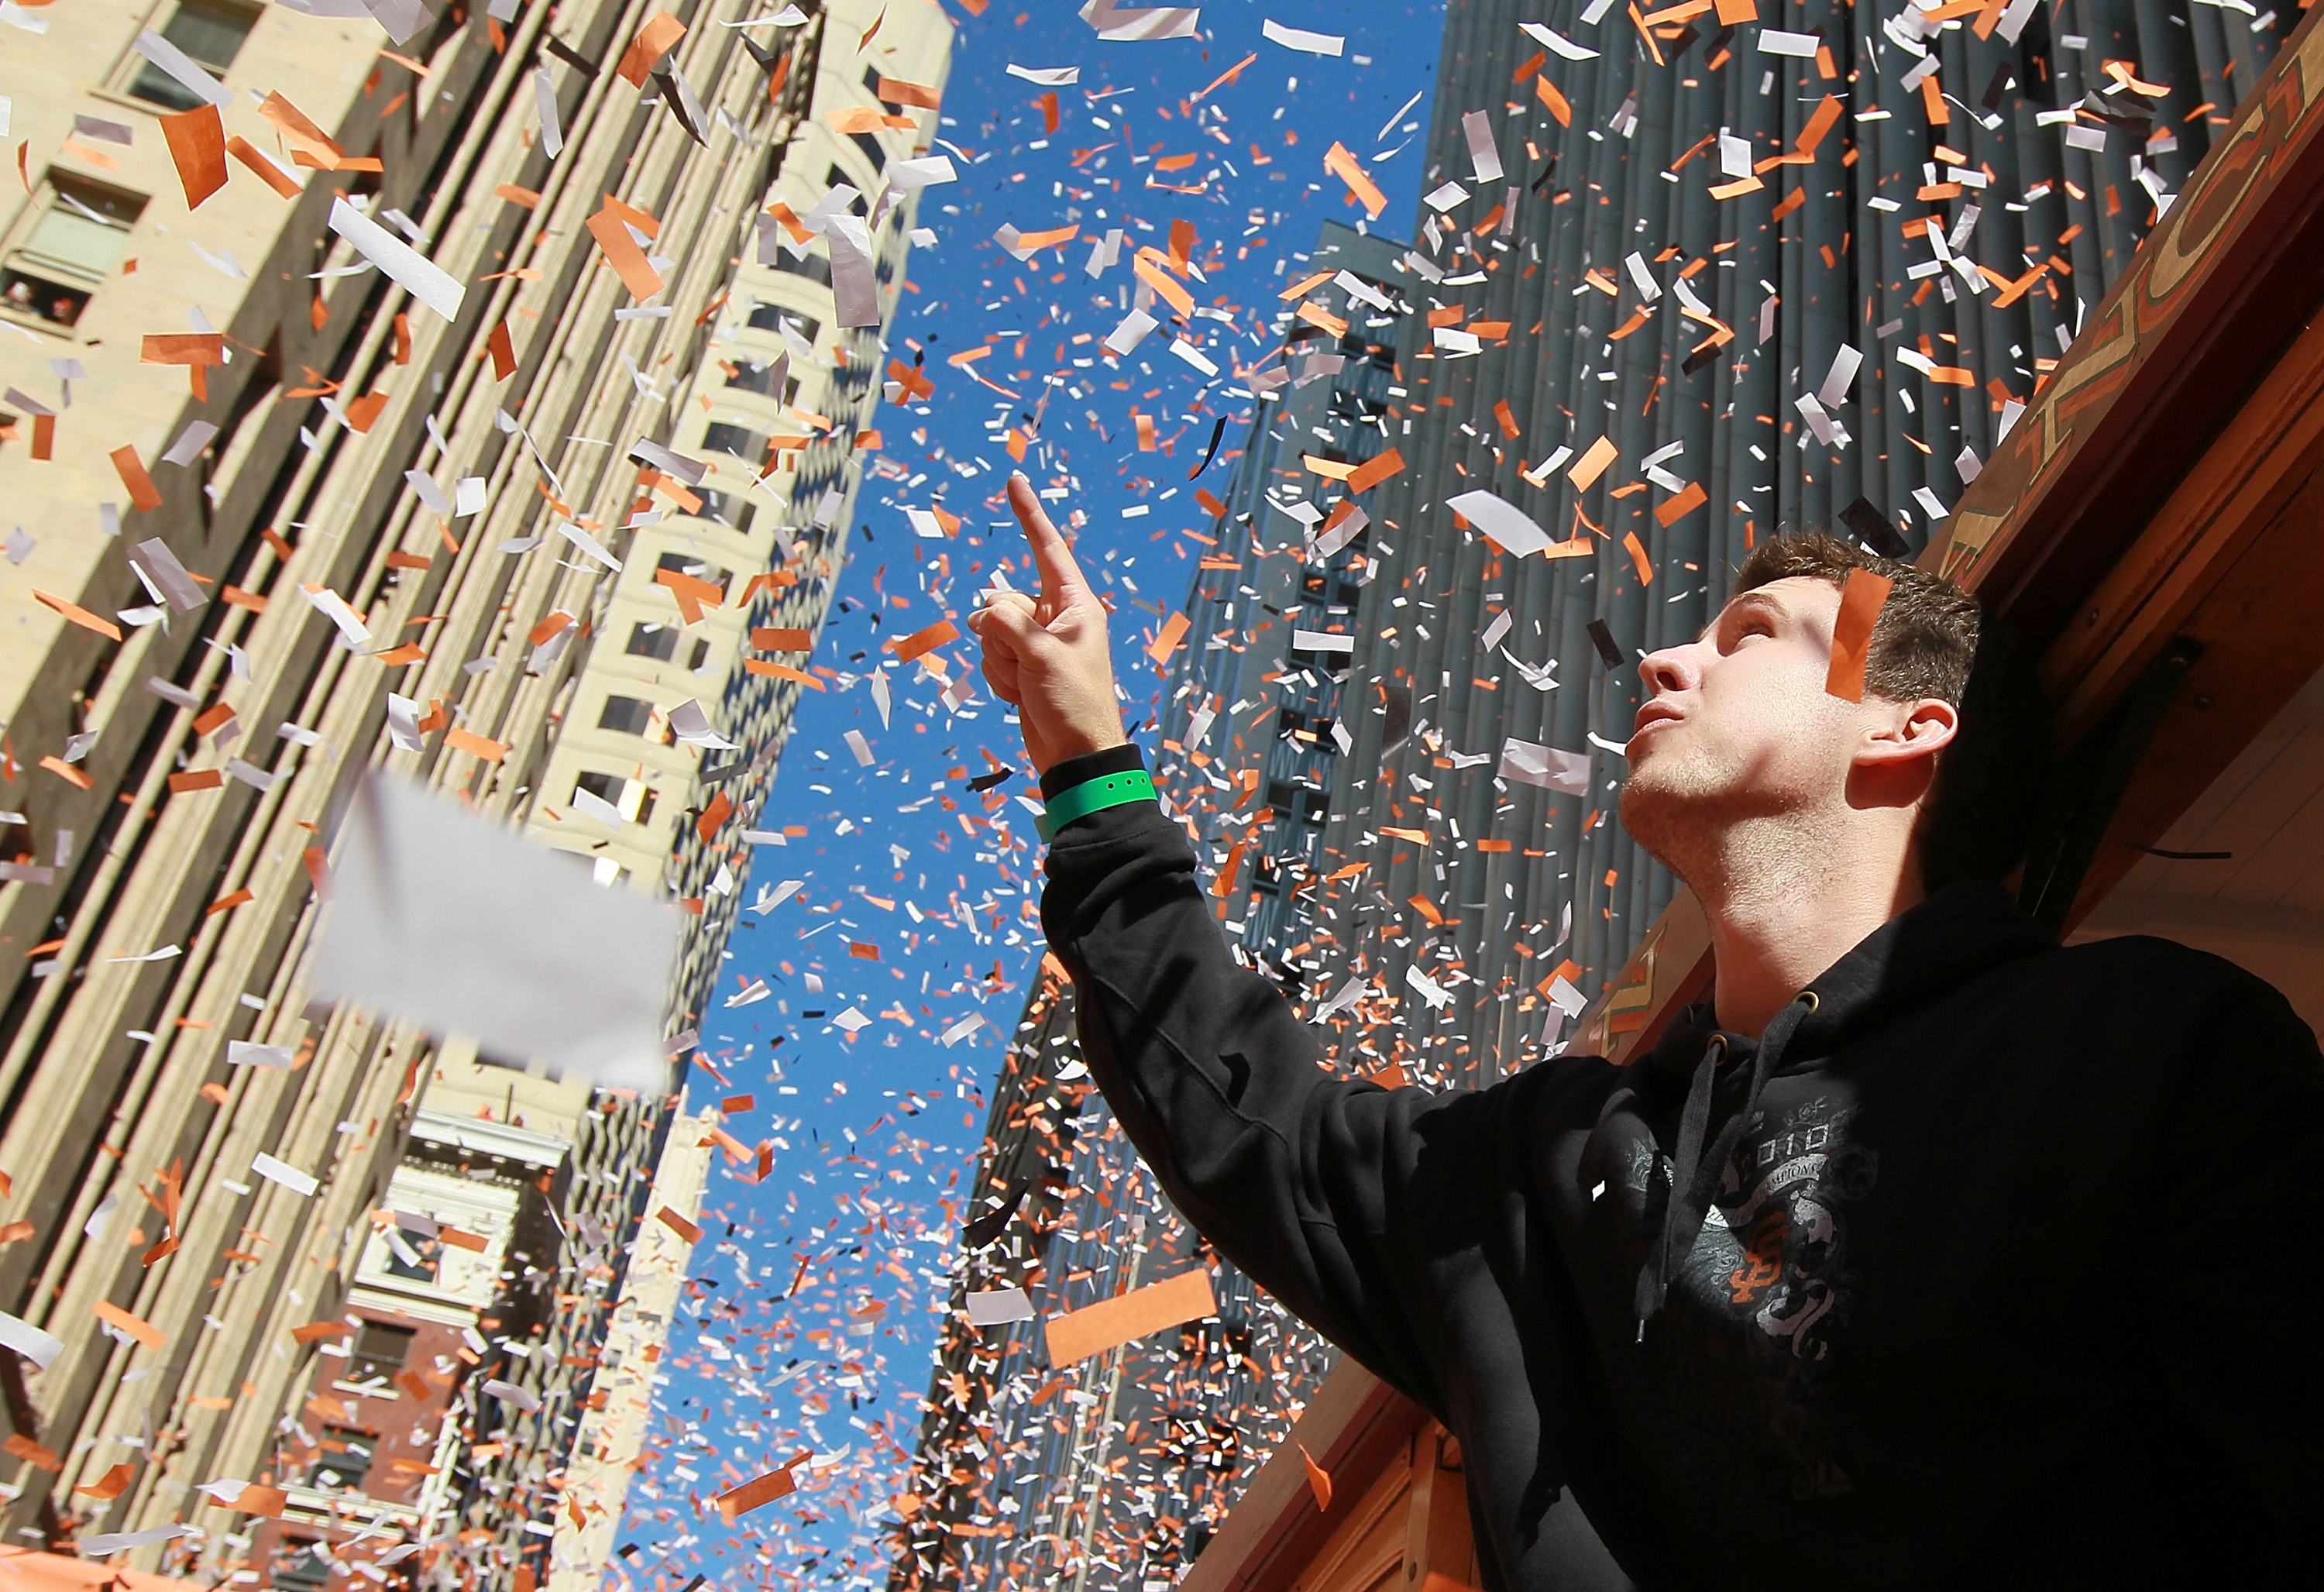 SAN FRANCISCO - NOVEMBER 03:  Buster Posey of the San Francisco Giants celebrates during the Giants' vicotry parade on November 3, 2010 in San Francisco, California. Thousands of Giants fans lined the streets of San Francisco to watch the San Francisco Gi